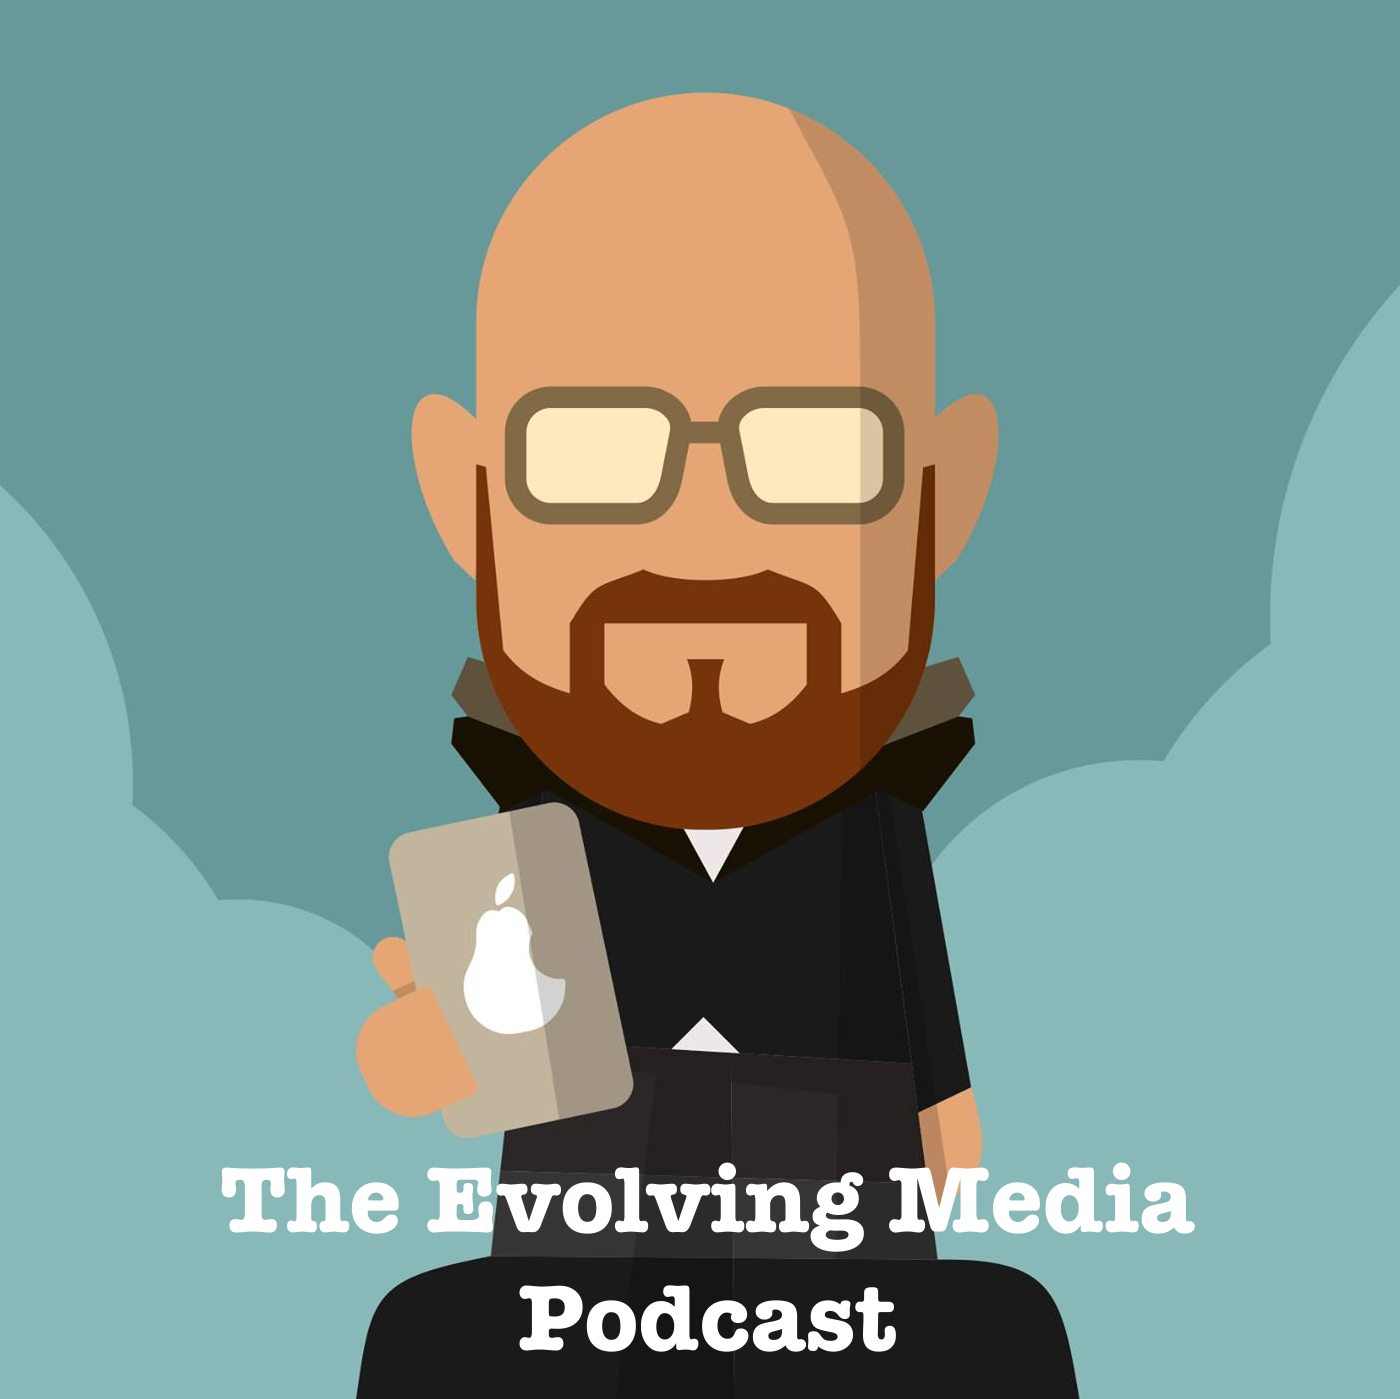 The Evolving Media Podcast